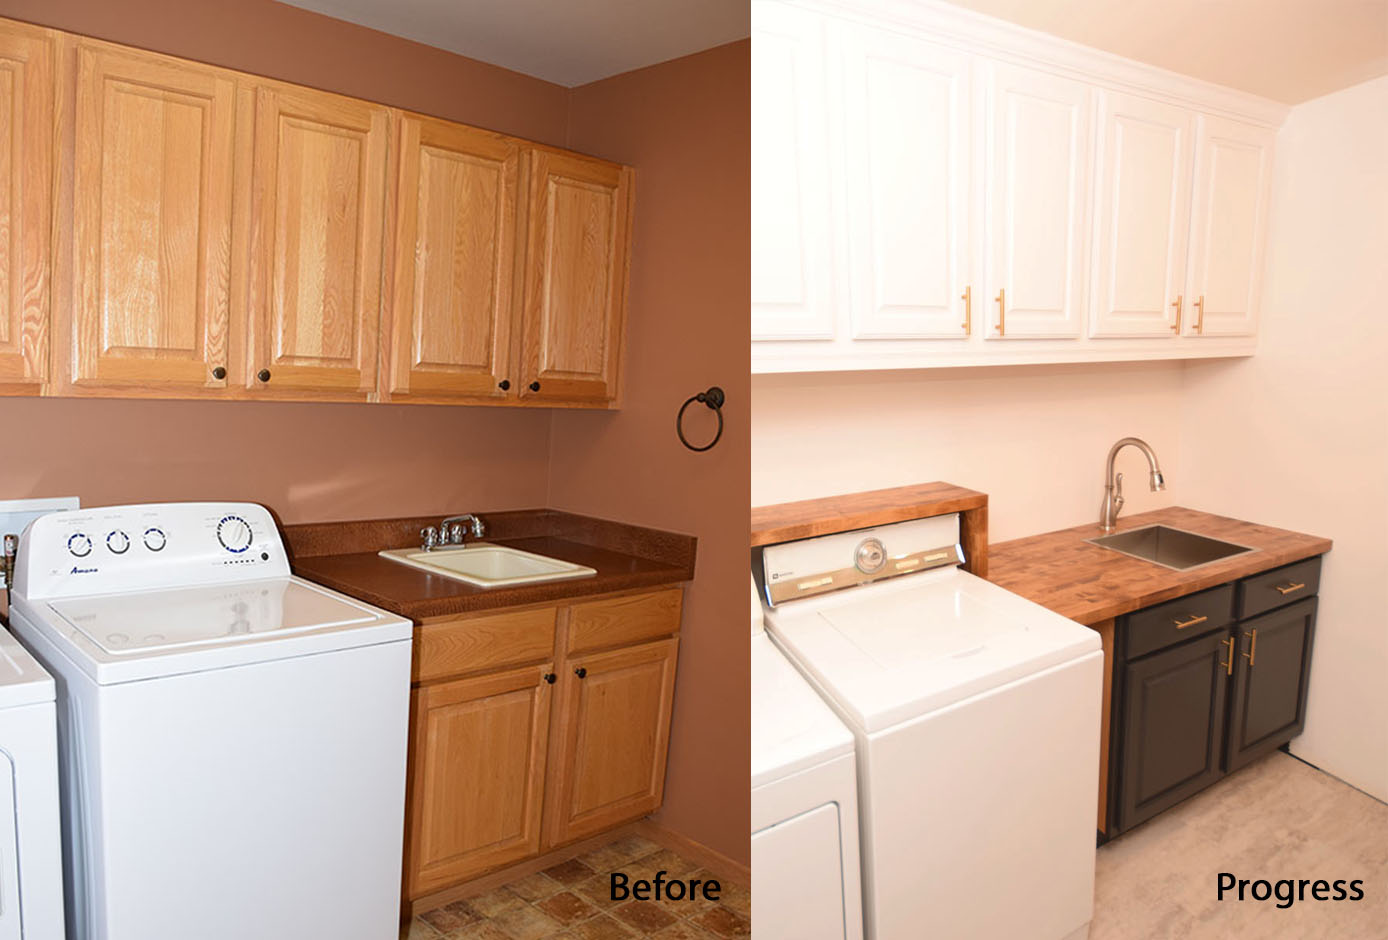 Mudroom Cabinets Before After Progress